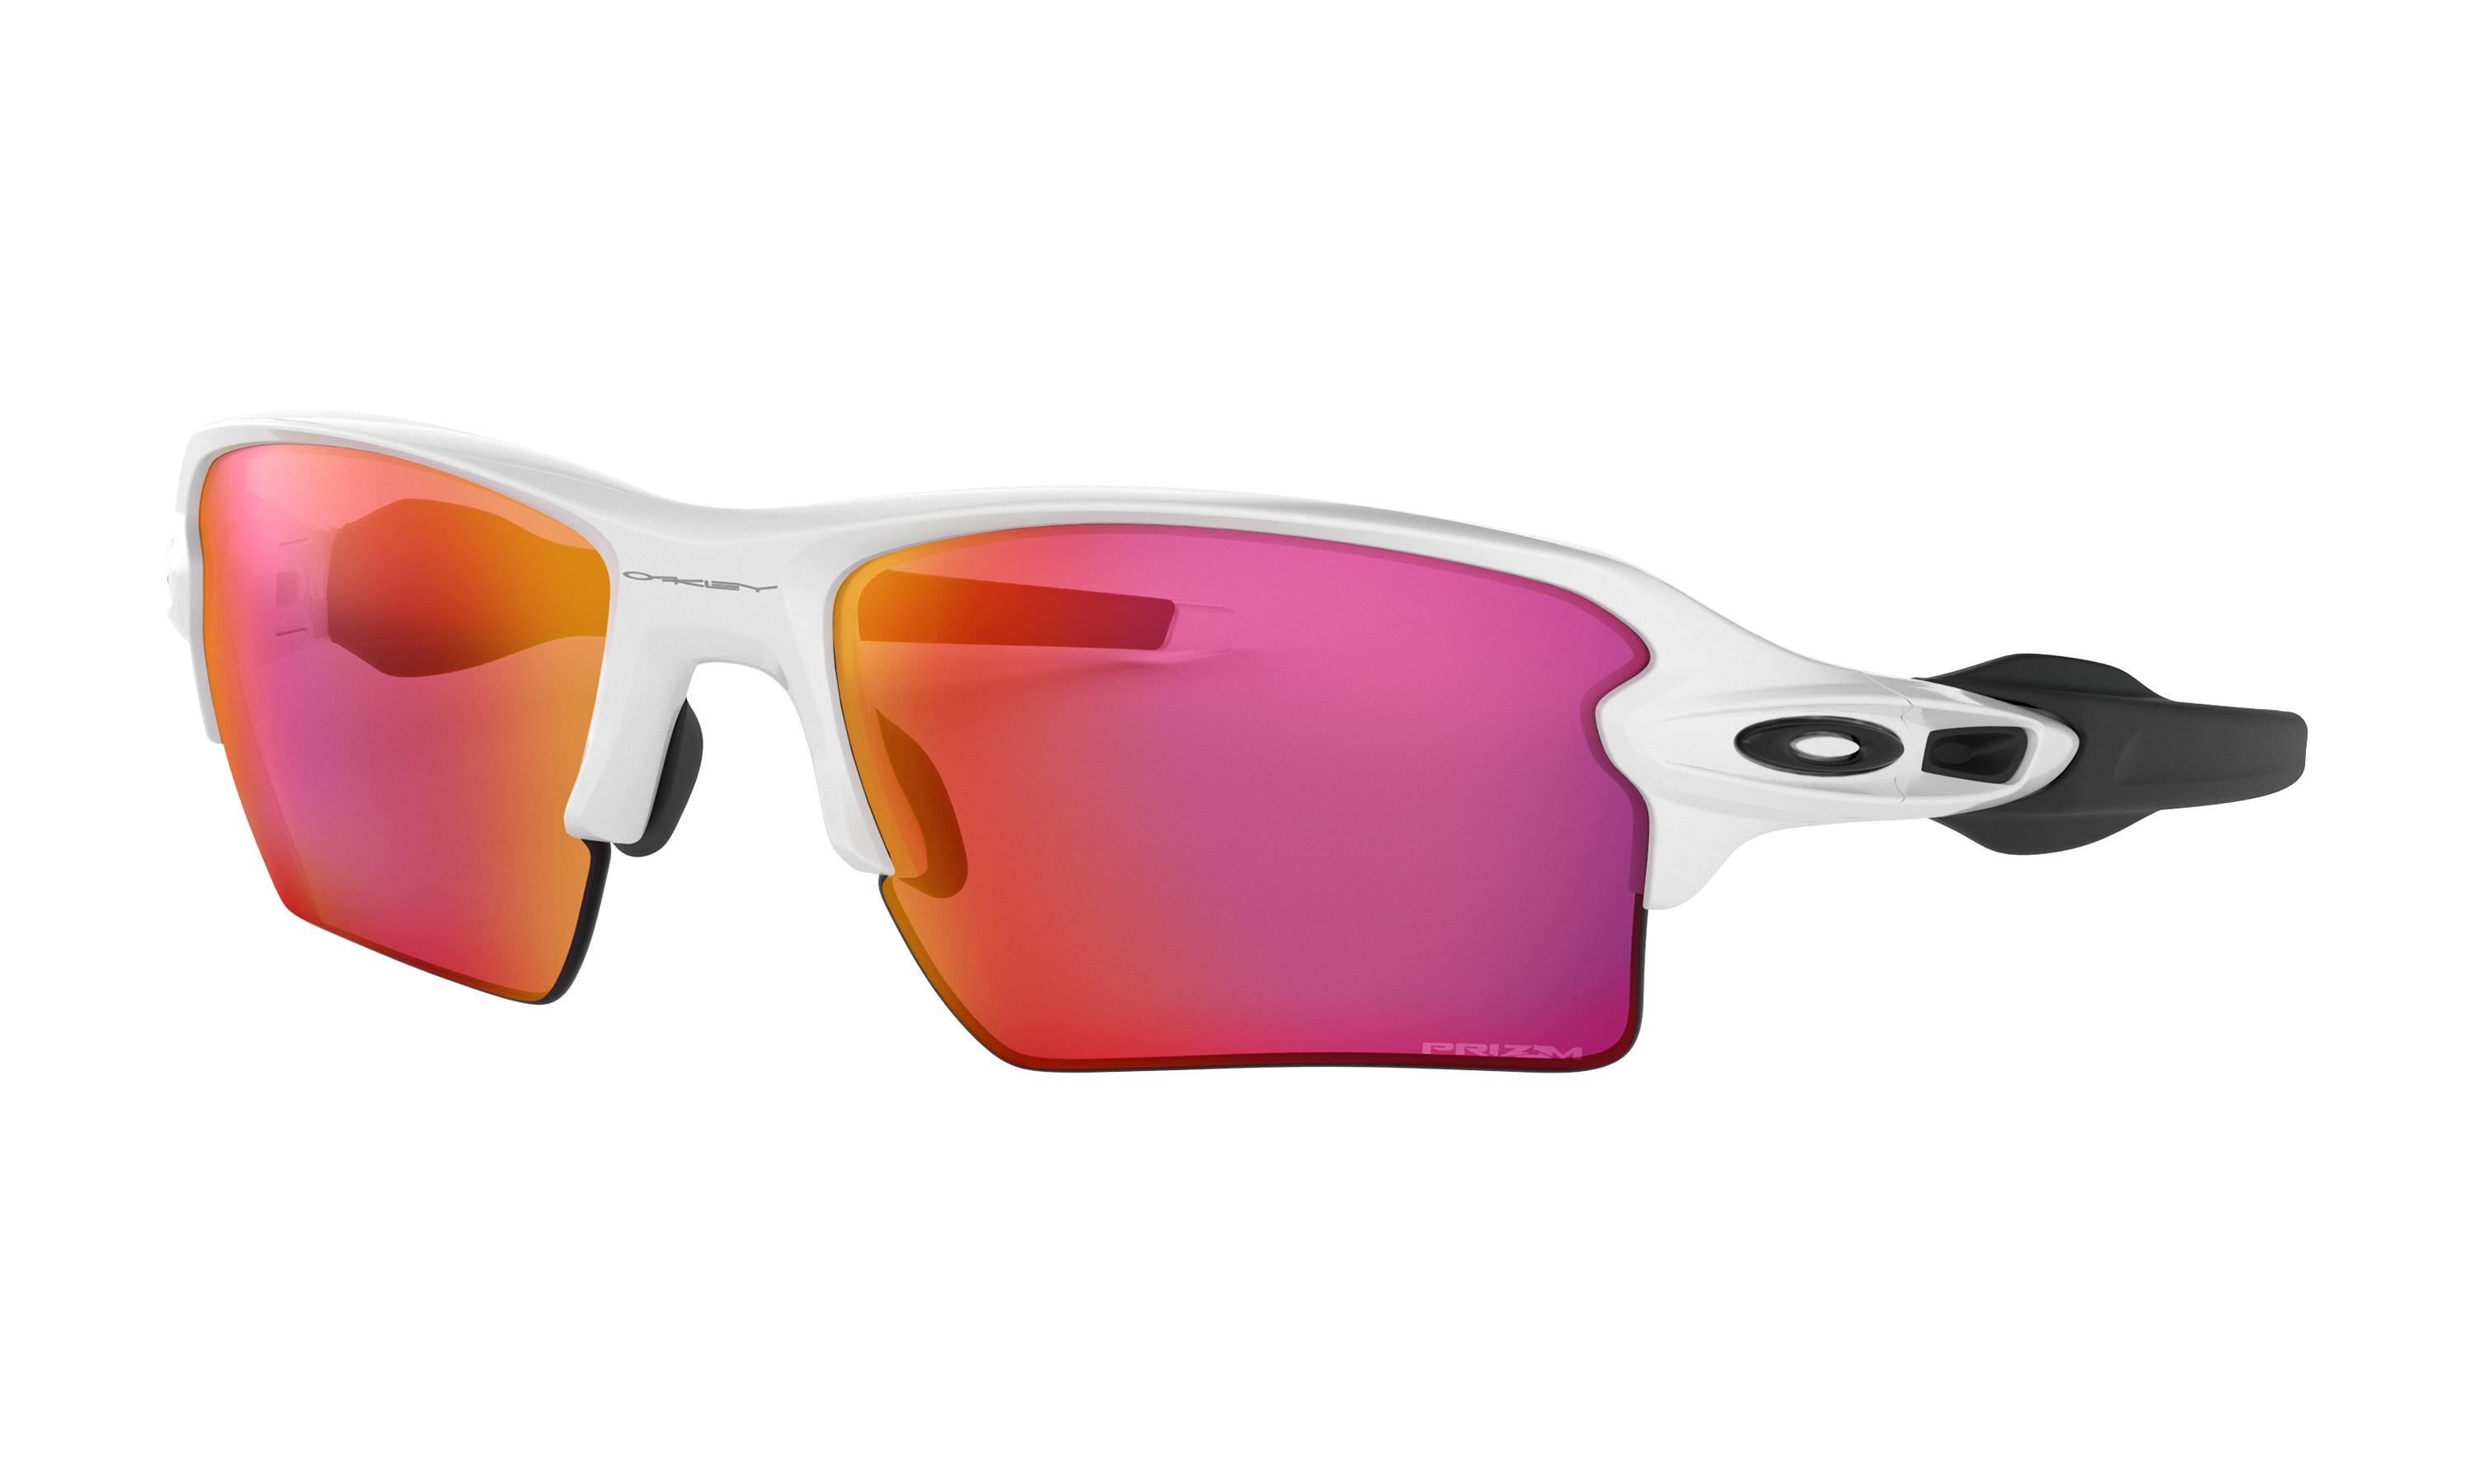 78af152763a3 Oakley® Flak 2.0 XL - PRIZM Prescription Available | SportRx